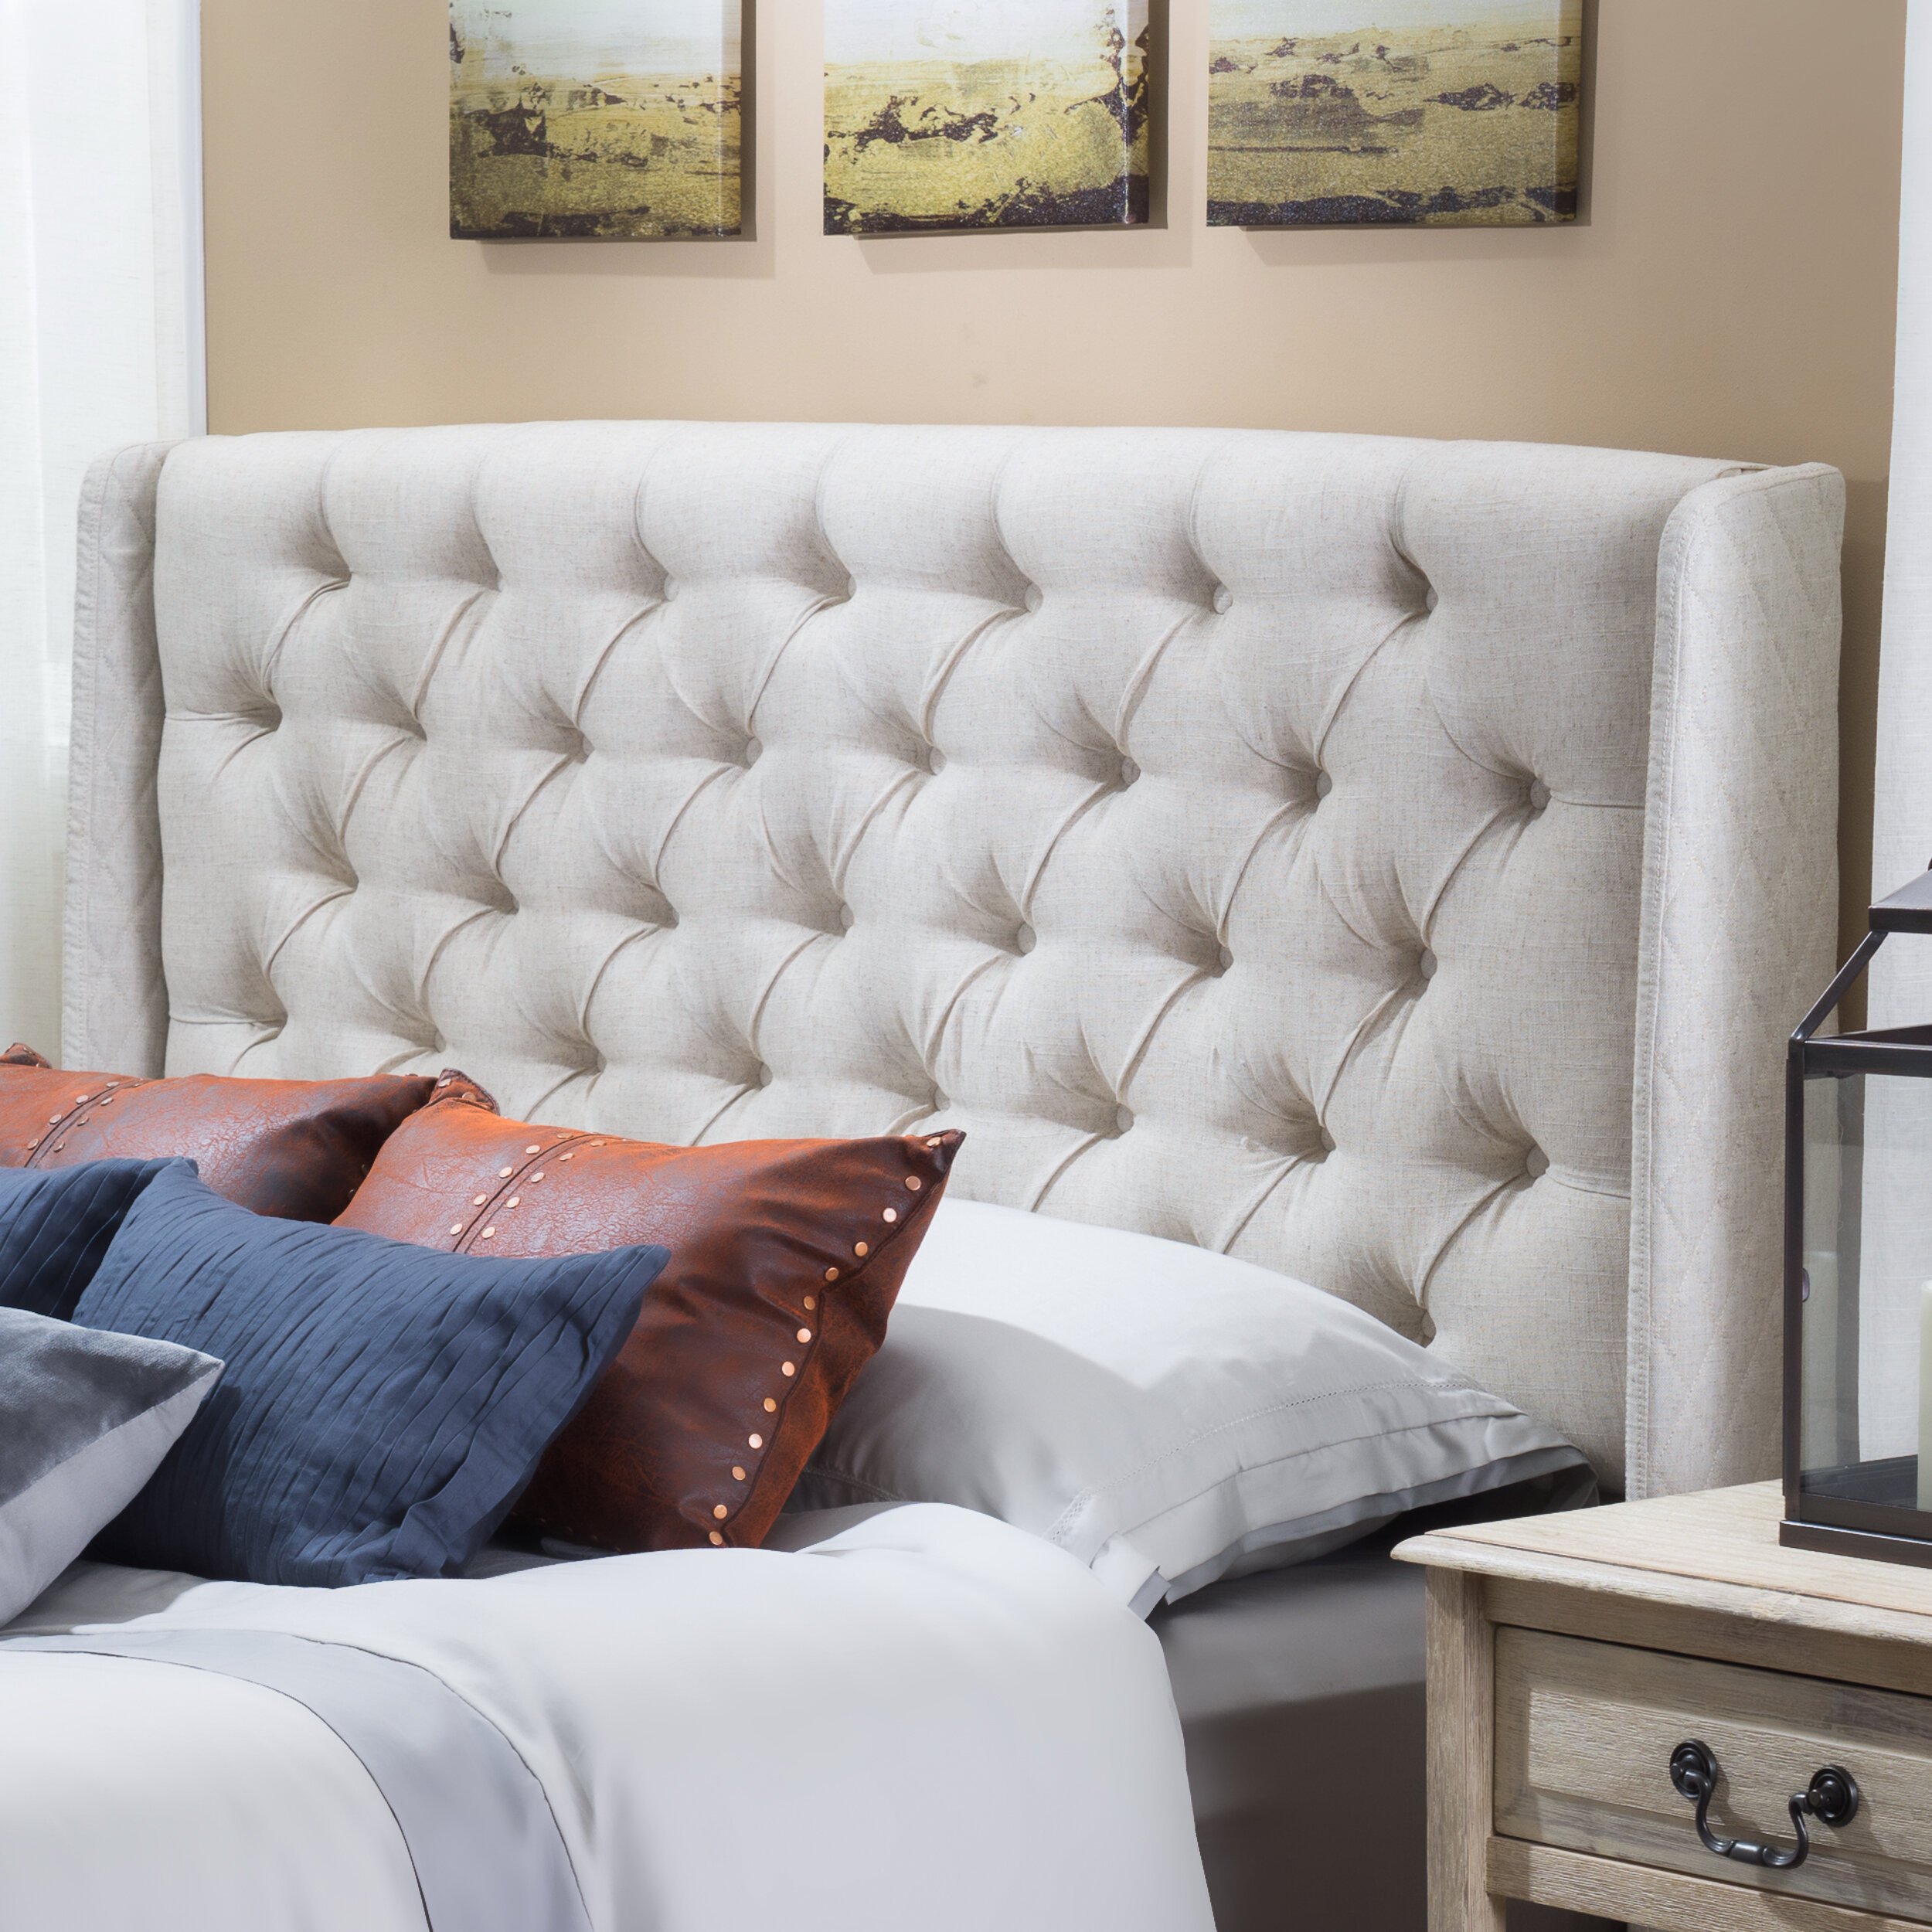 ashley headboards headboard sale beds with king footboard fabric queen padded upholstered bed platform for full of size iron wrought frame